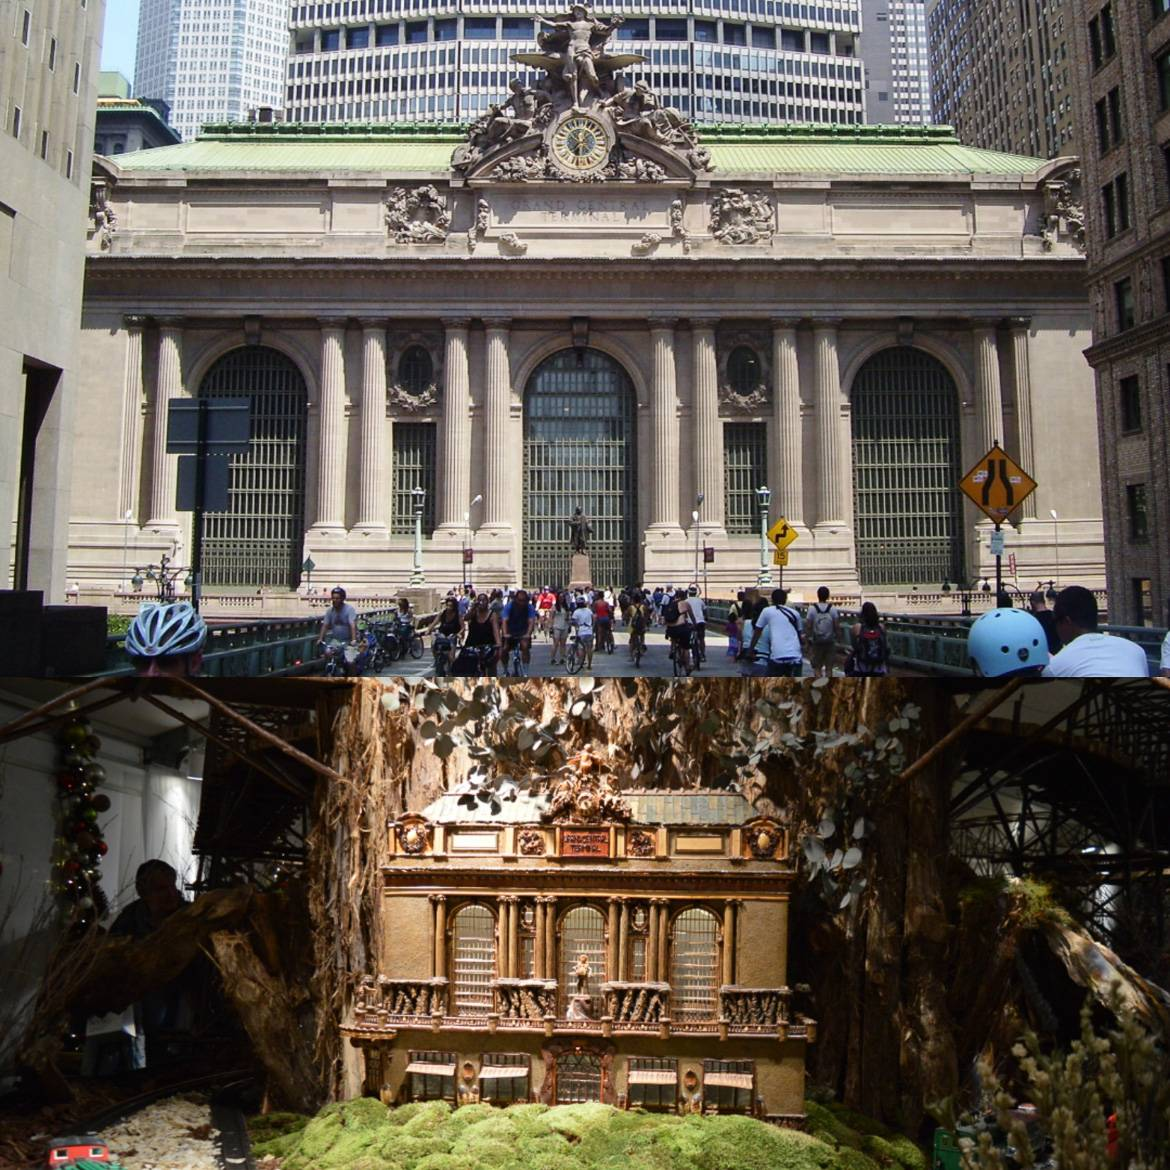 Photo d'une miniature du Grand Central Terminal faite à partir d'écorce d'arbre et photo du Grand Central Terminal avec cyclistes sur la chaussée